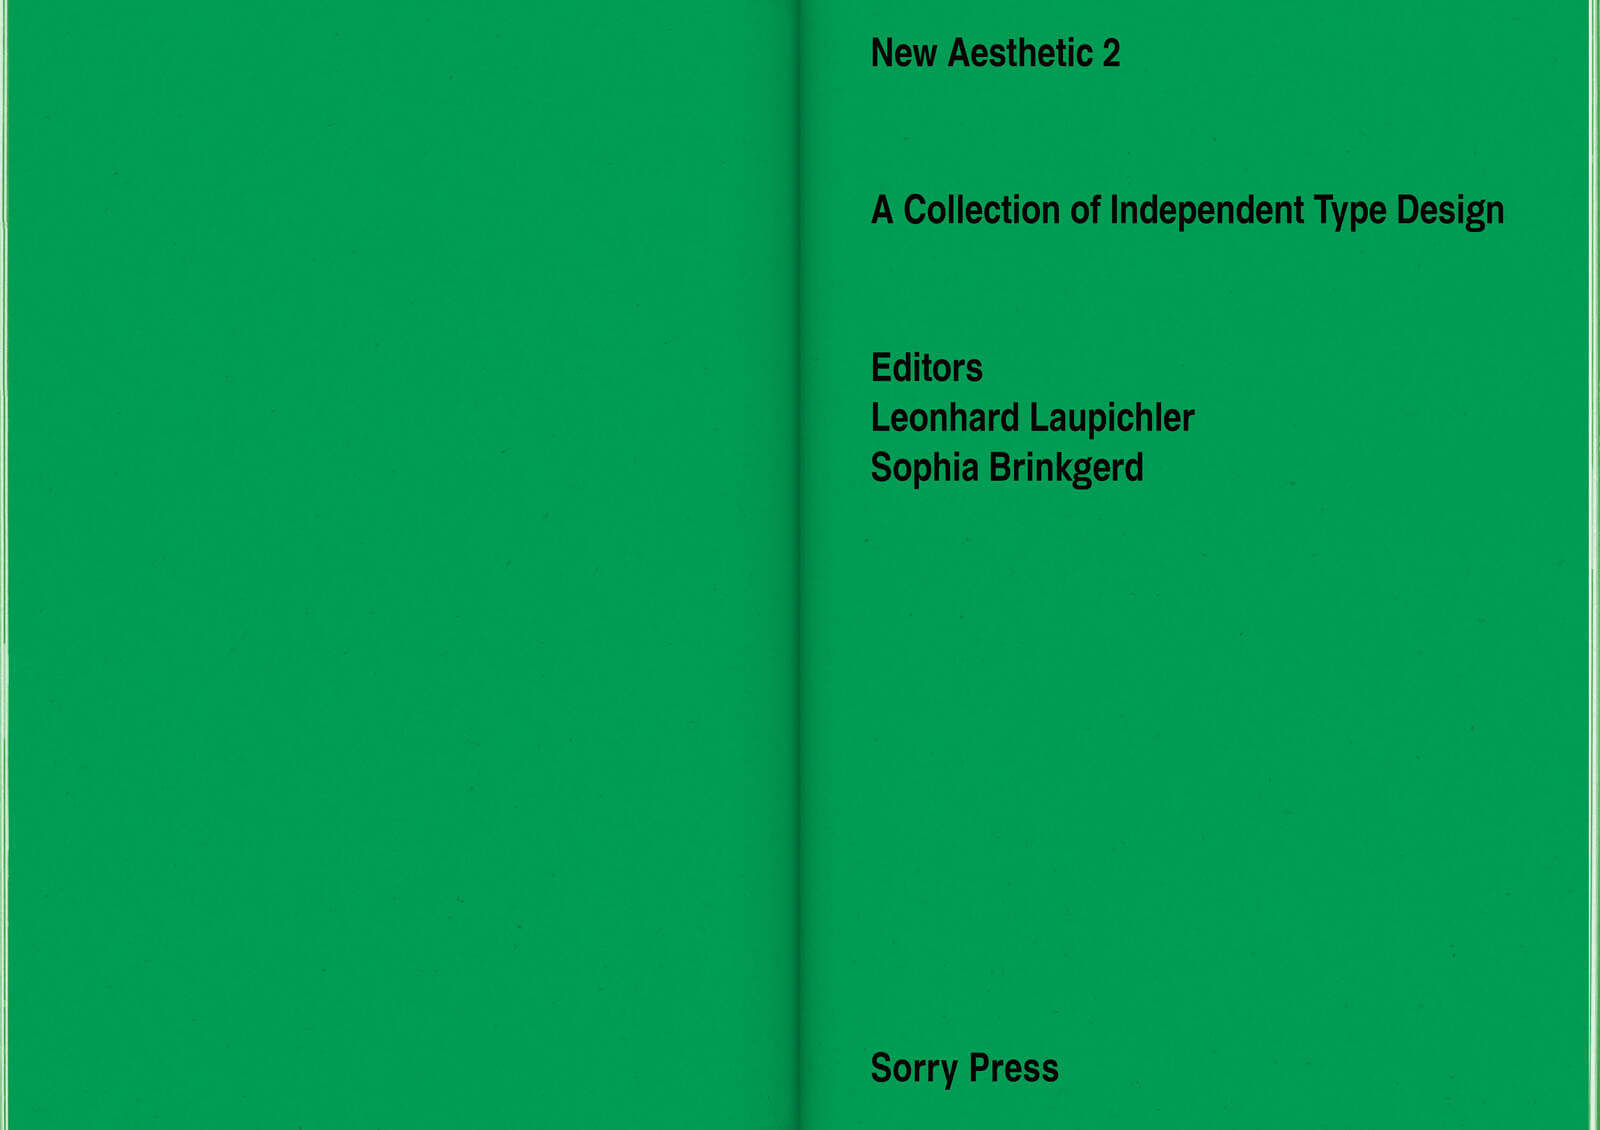 New Aesthetic 2: A Collection of Independent Type Design 7